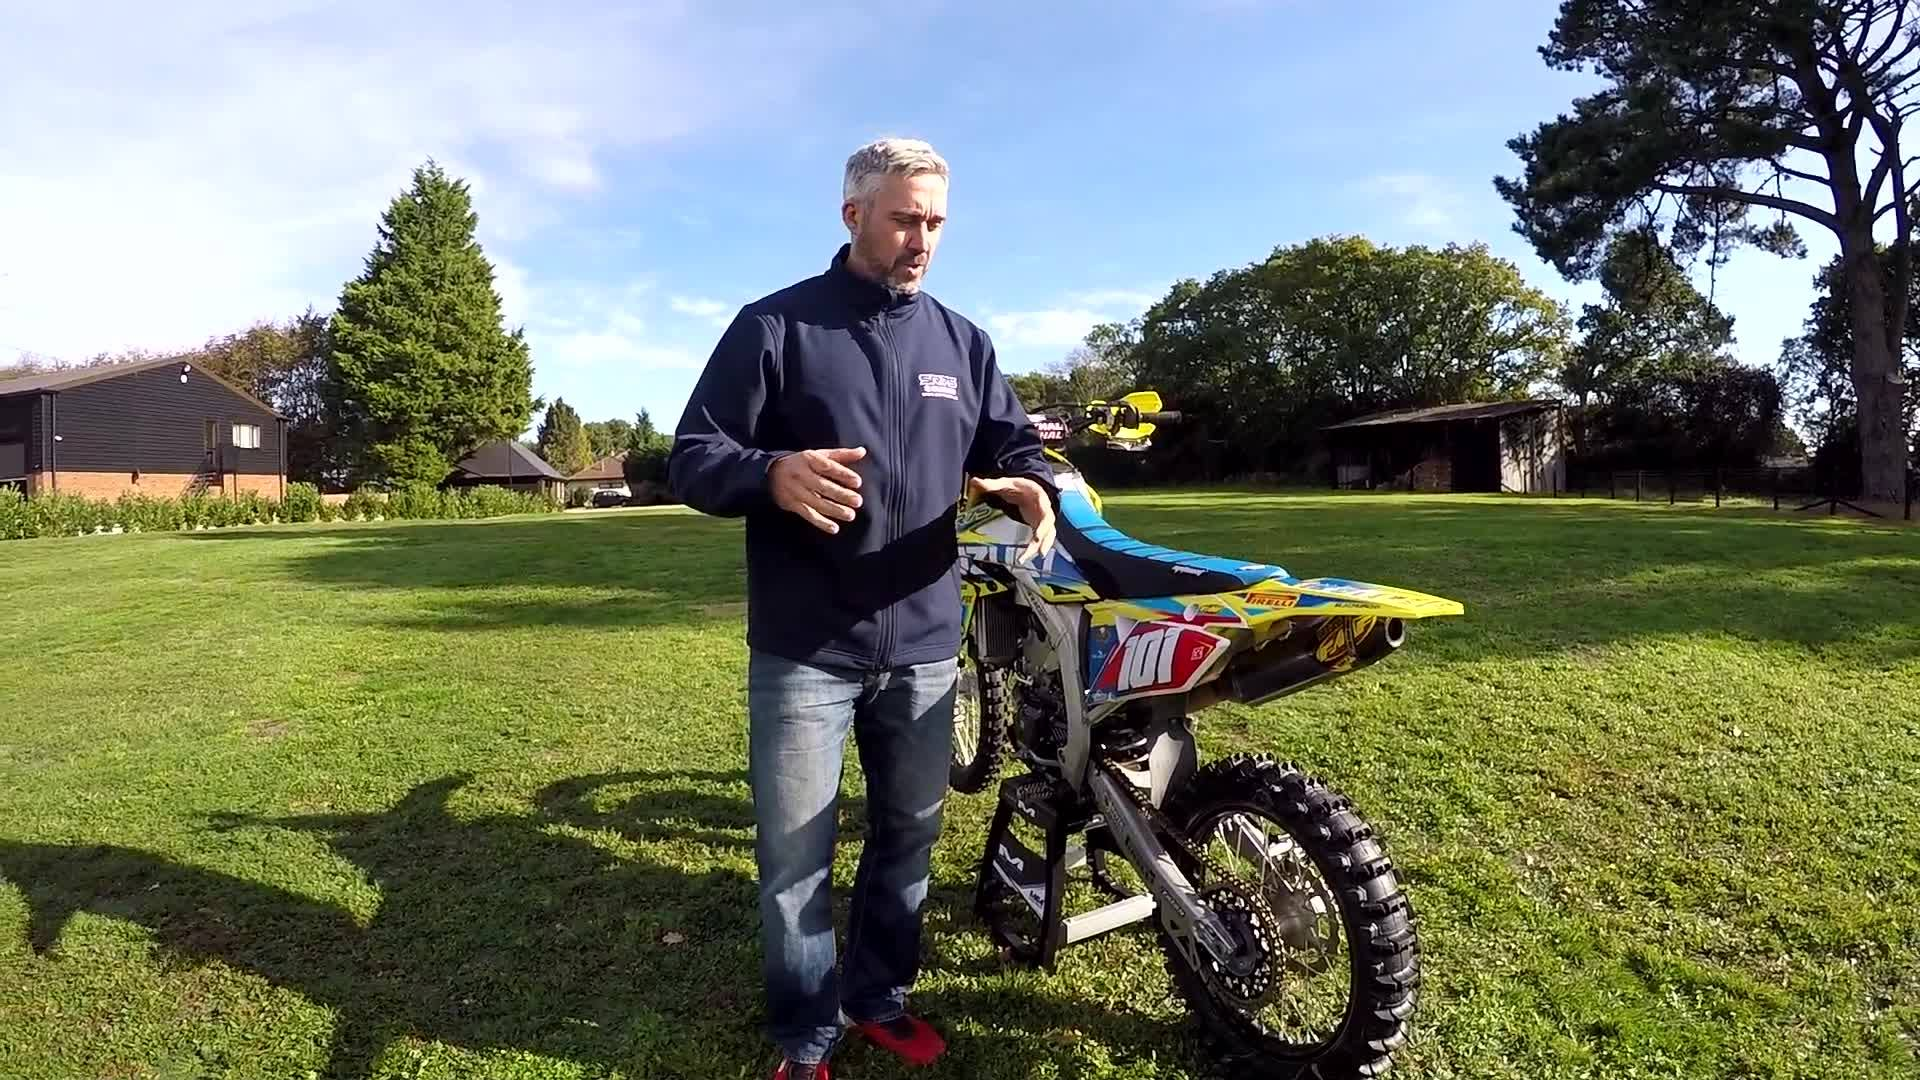 DAVID KNIGHT RM-Z 450 SR75 SUZUKI BIKE CHECK.